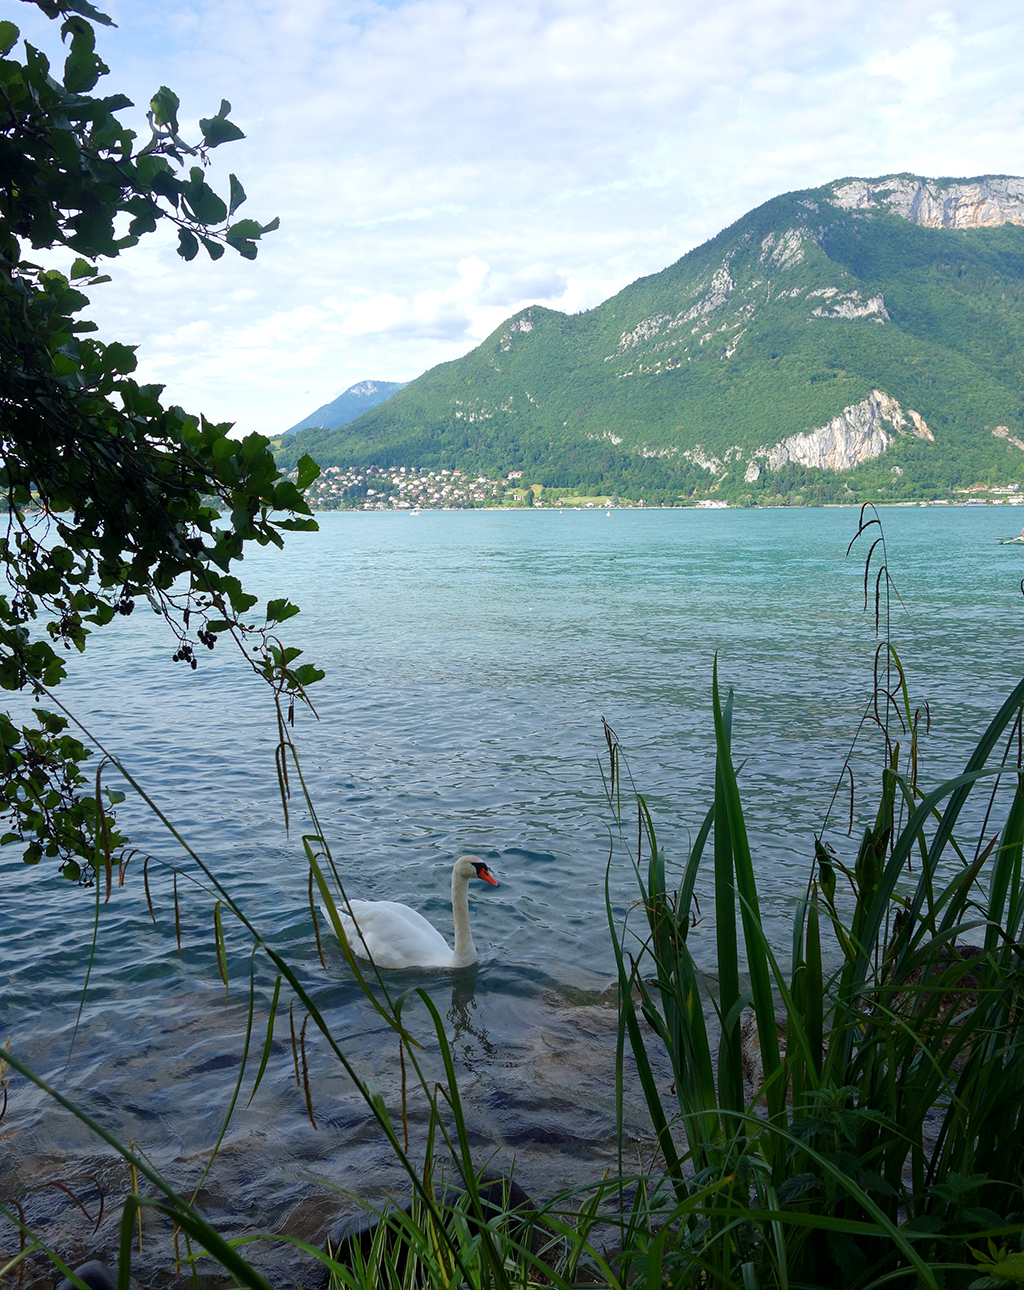 Swan Lake in Annecy, France